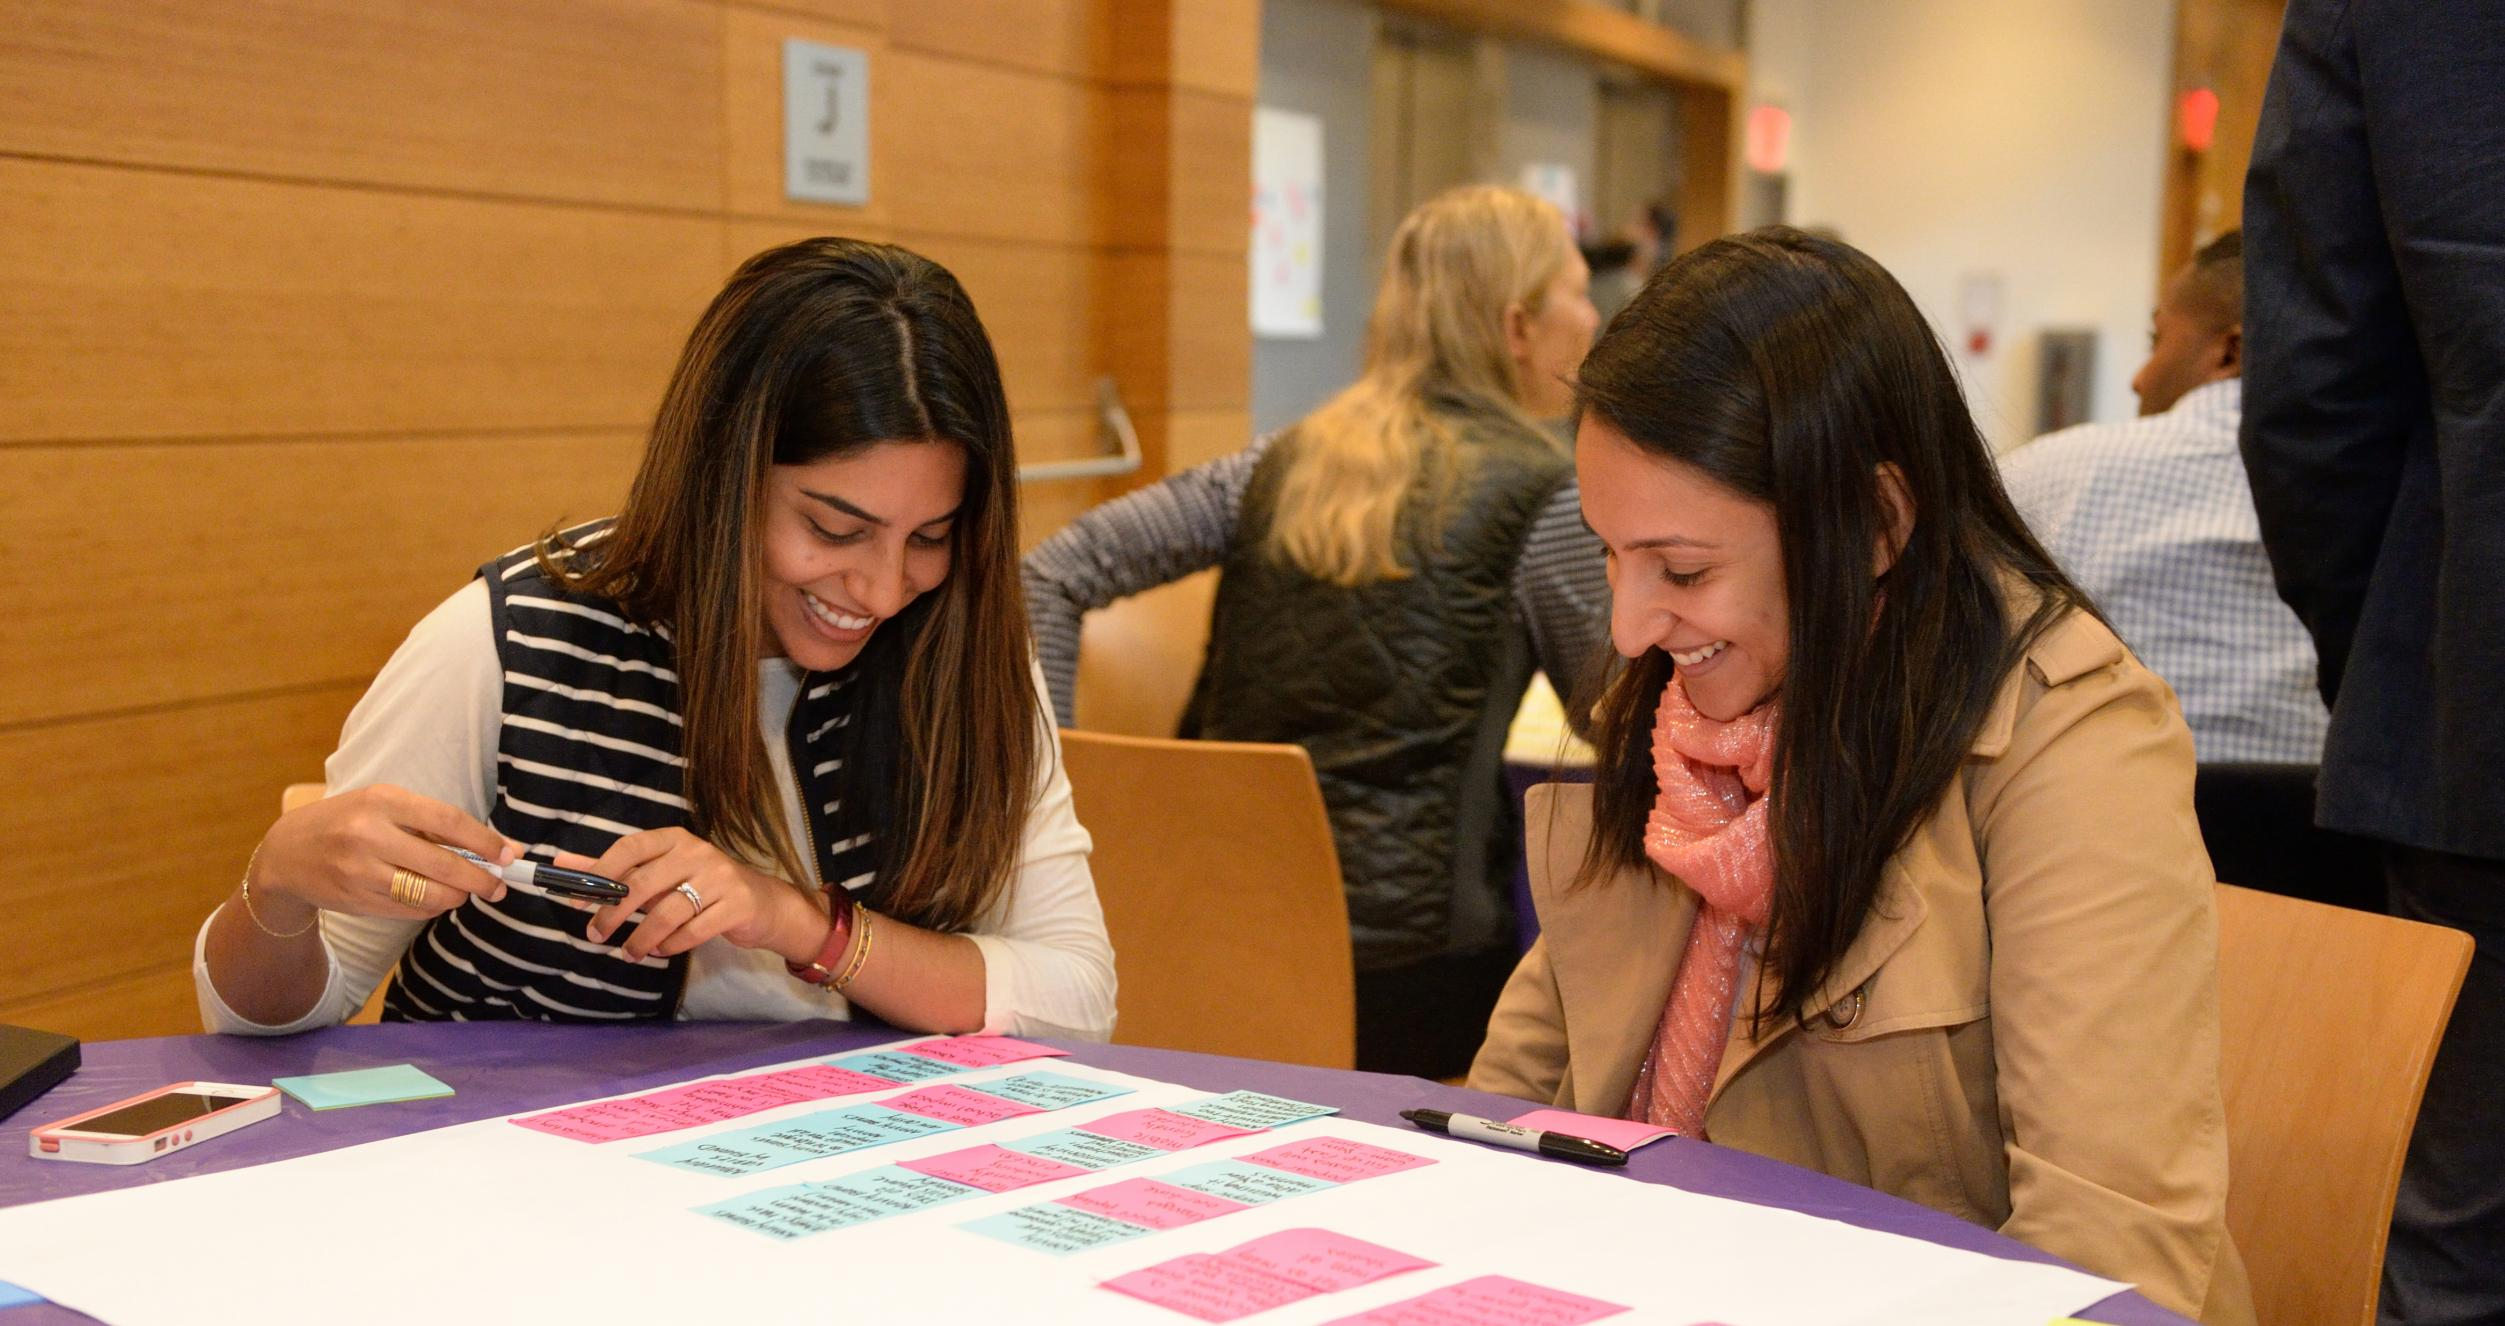 students collaborating at a table